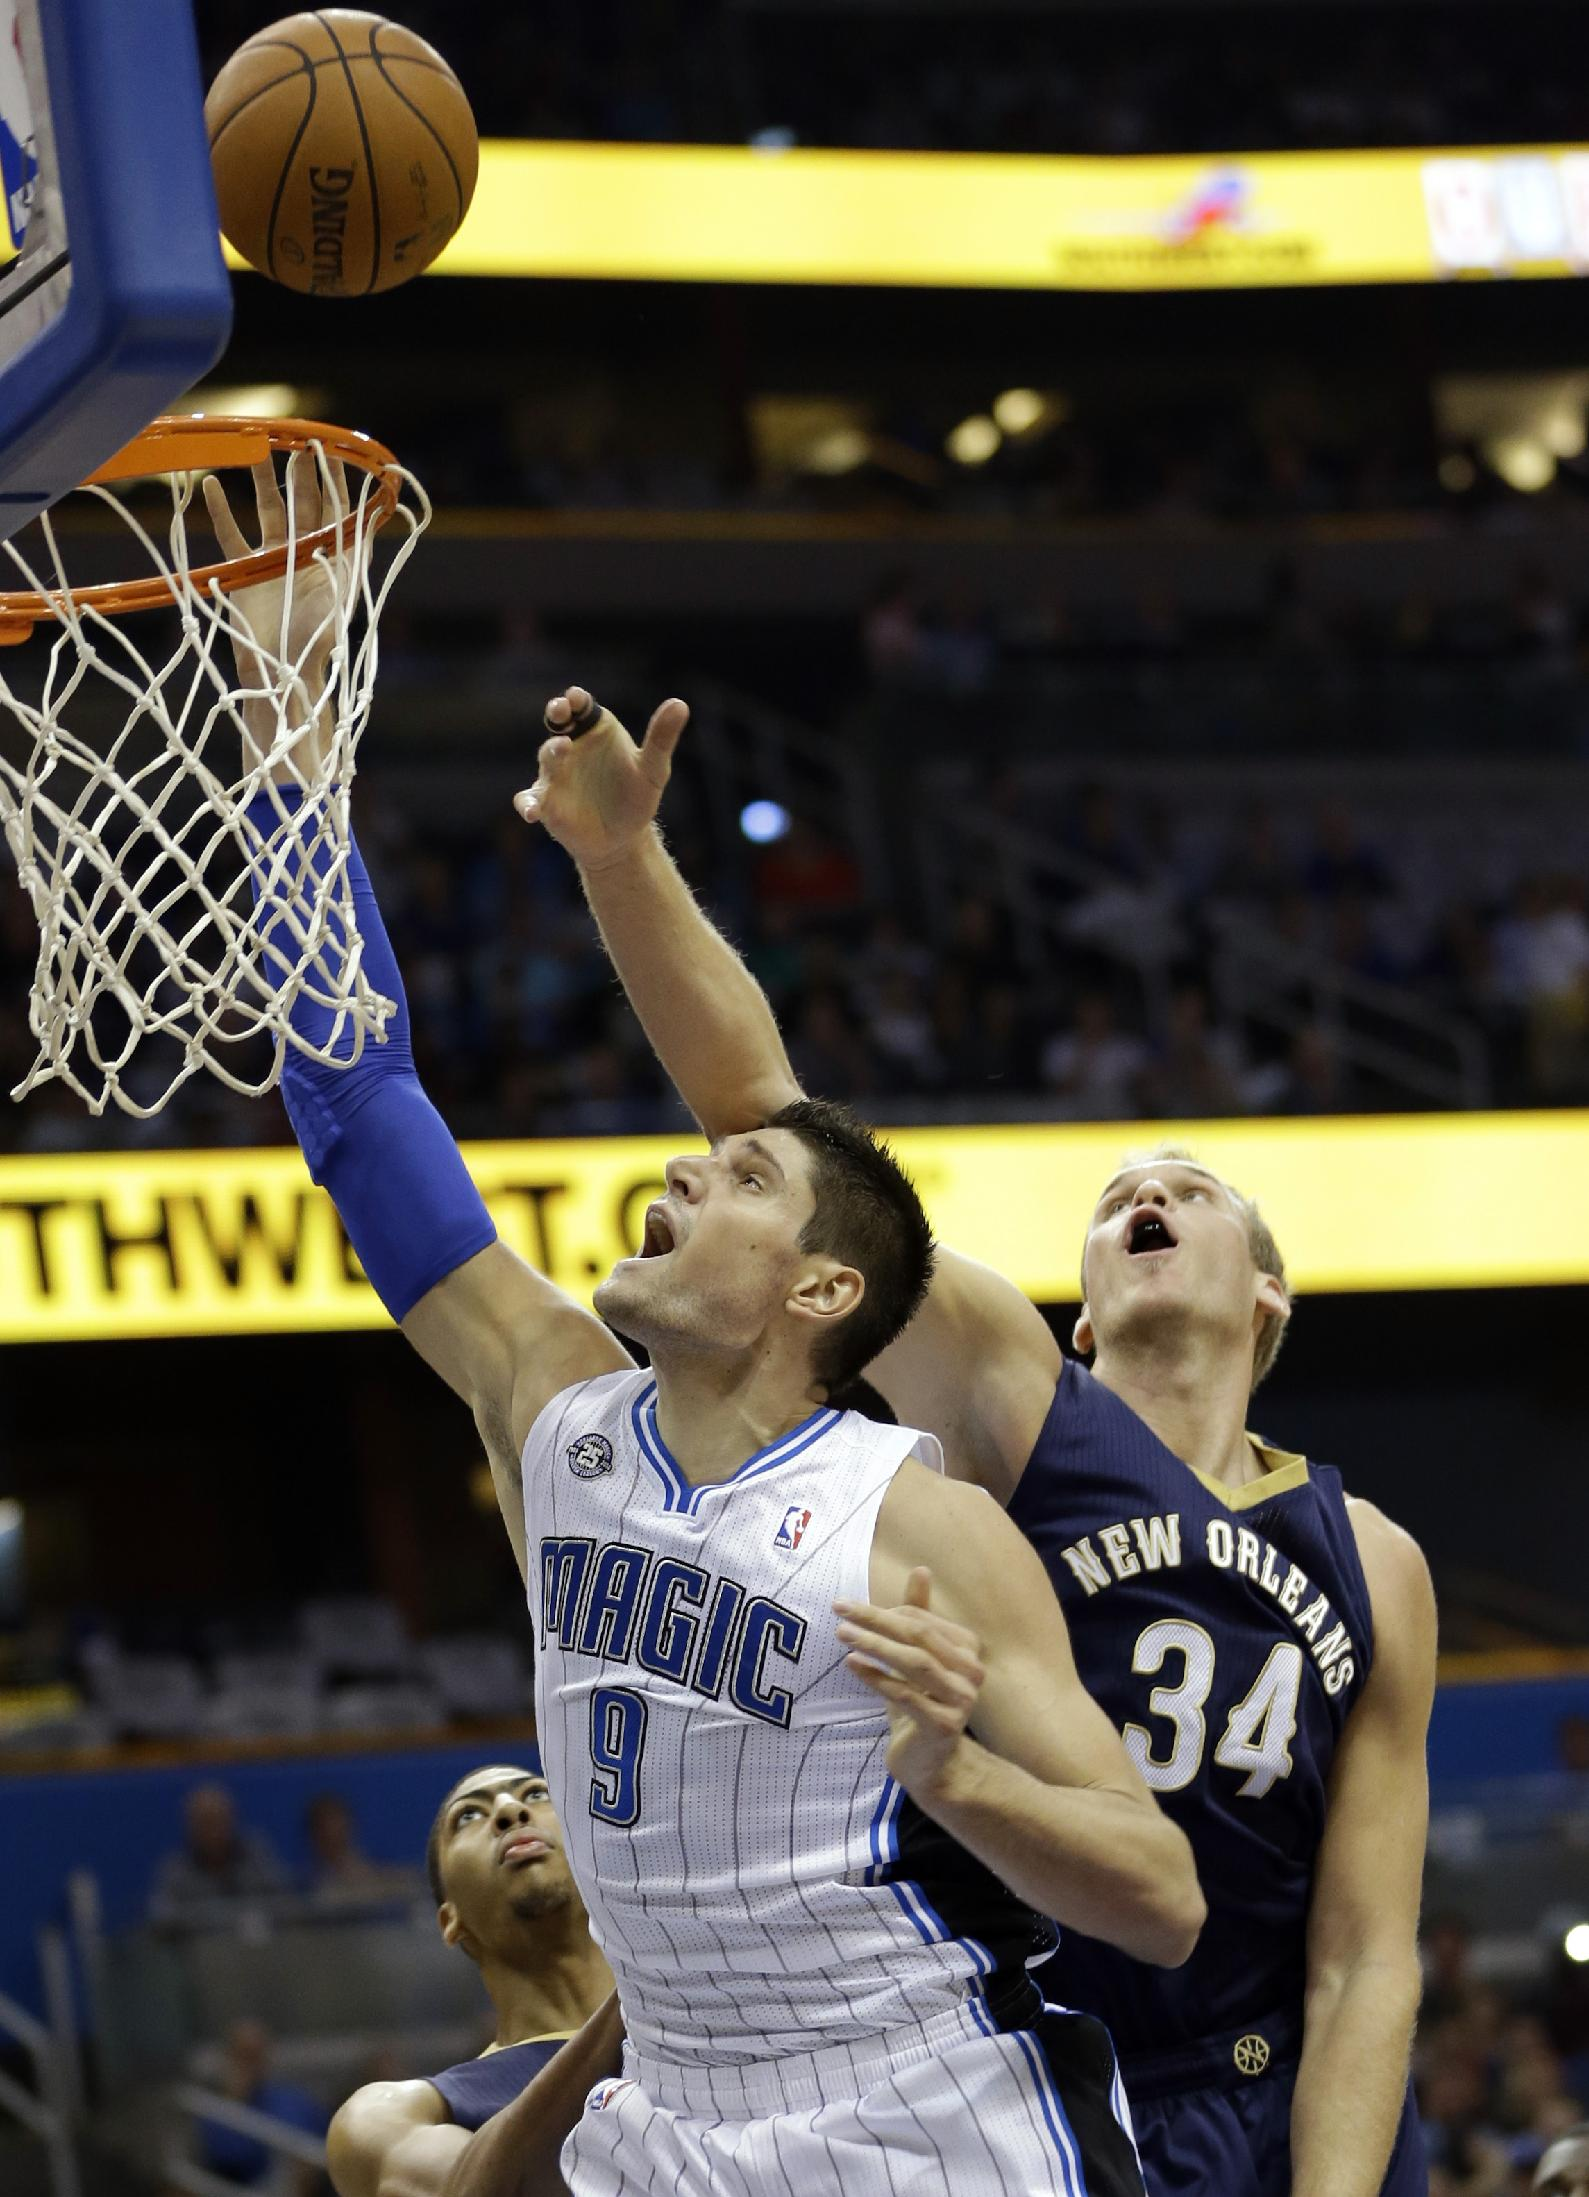 Orlando Magic's Nikola Vucevic (9), of Montenegro, makes a shot in front of New Orleans Pelicans' Greg Stiemsma (34) during the first half of an NBA basketball game in Orlando, Fla., Friday, Nov. 1, 2013